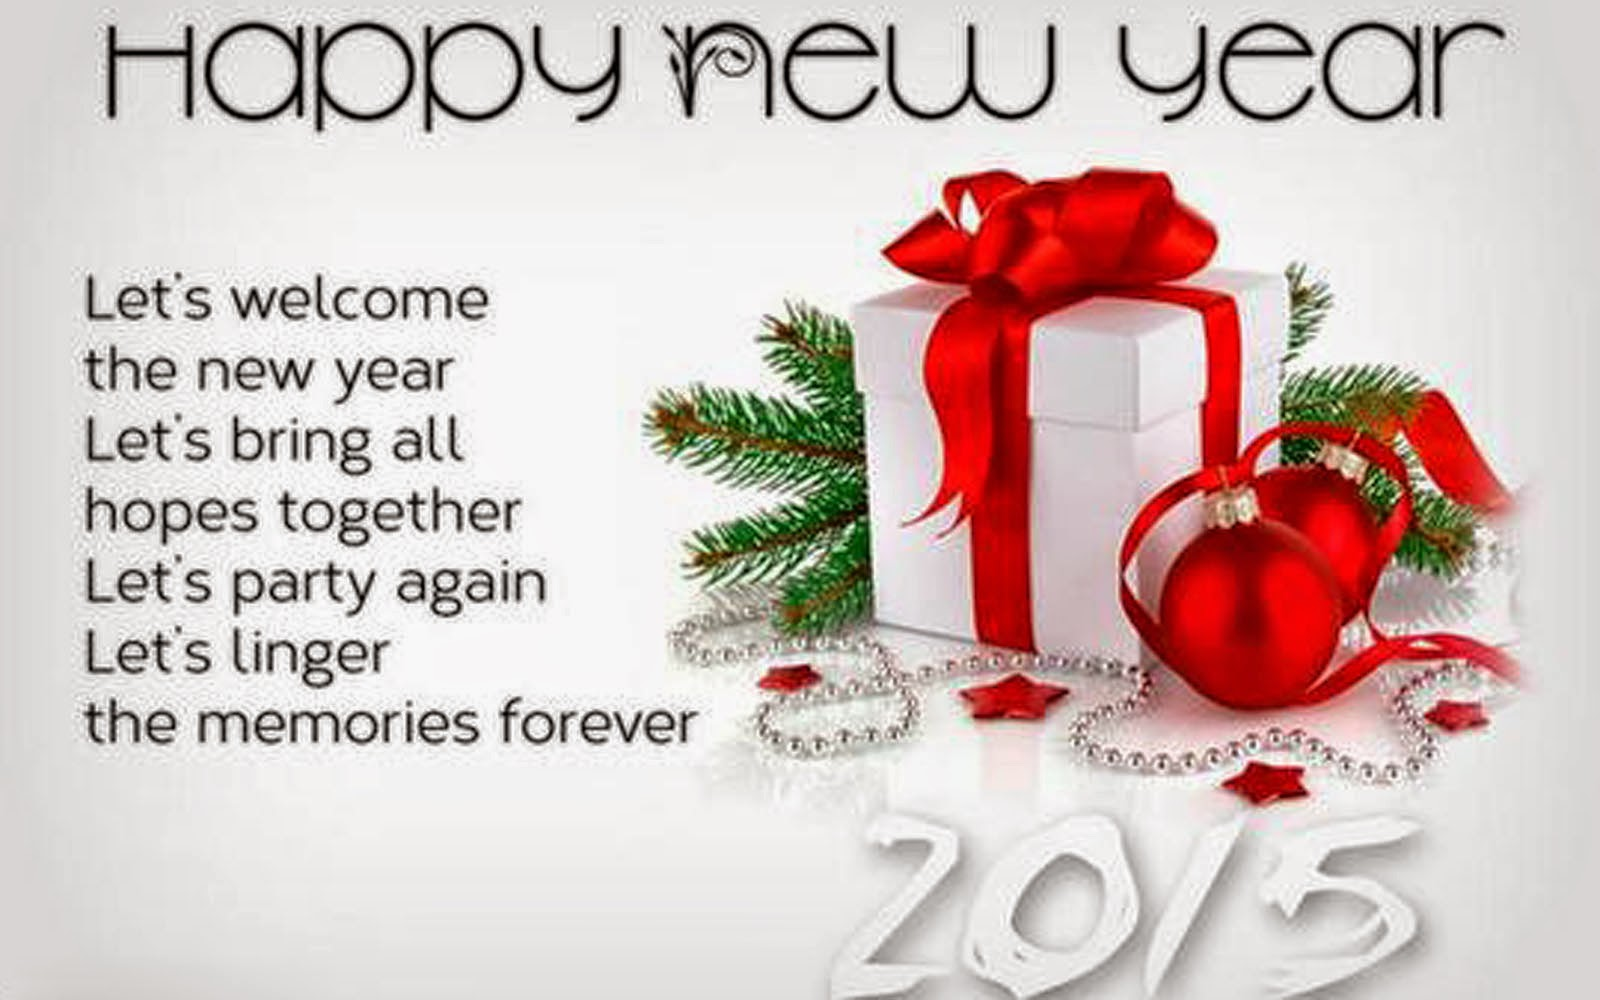 Happy new year greetings hd wallpapers happy new year greetings kristyandbryce Images